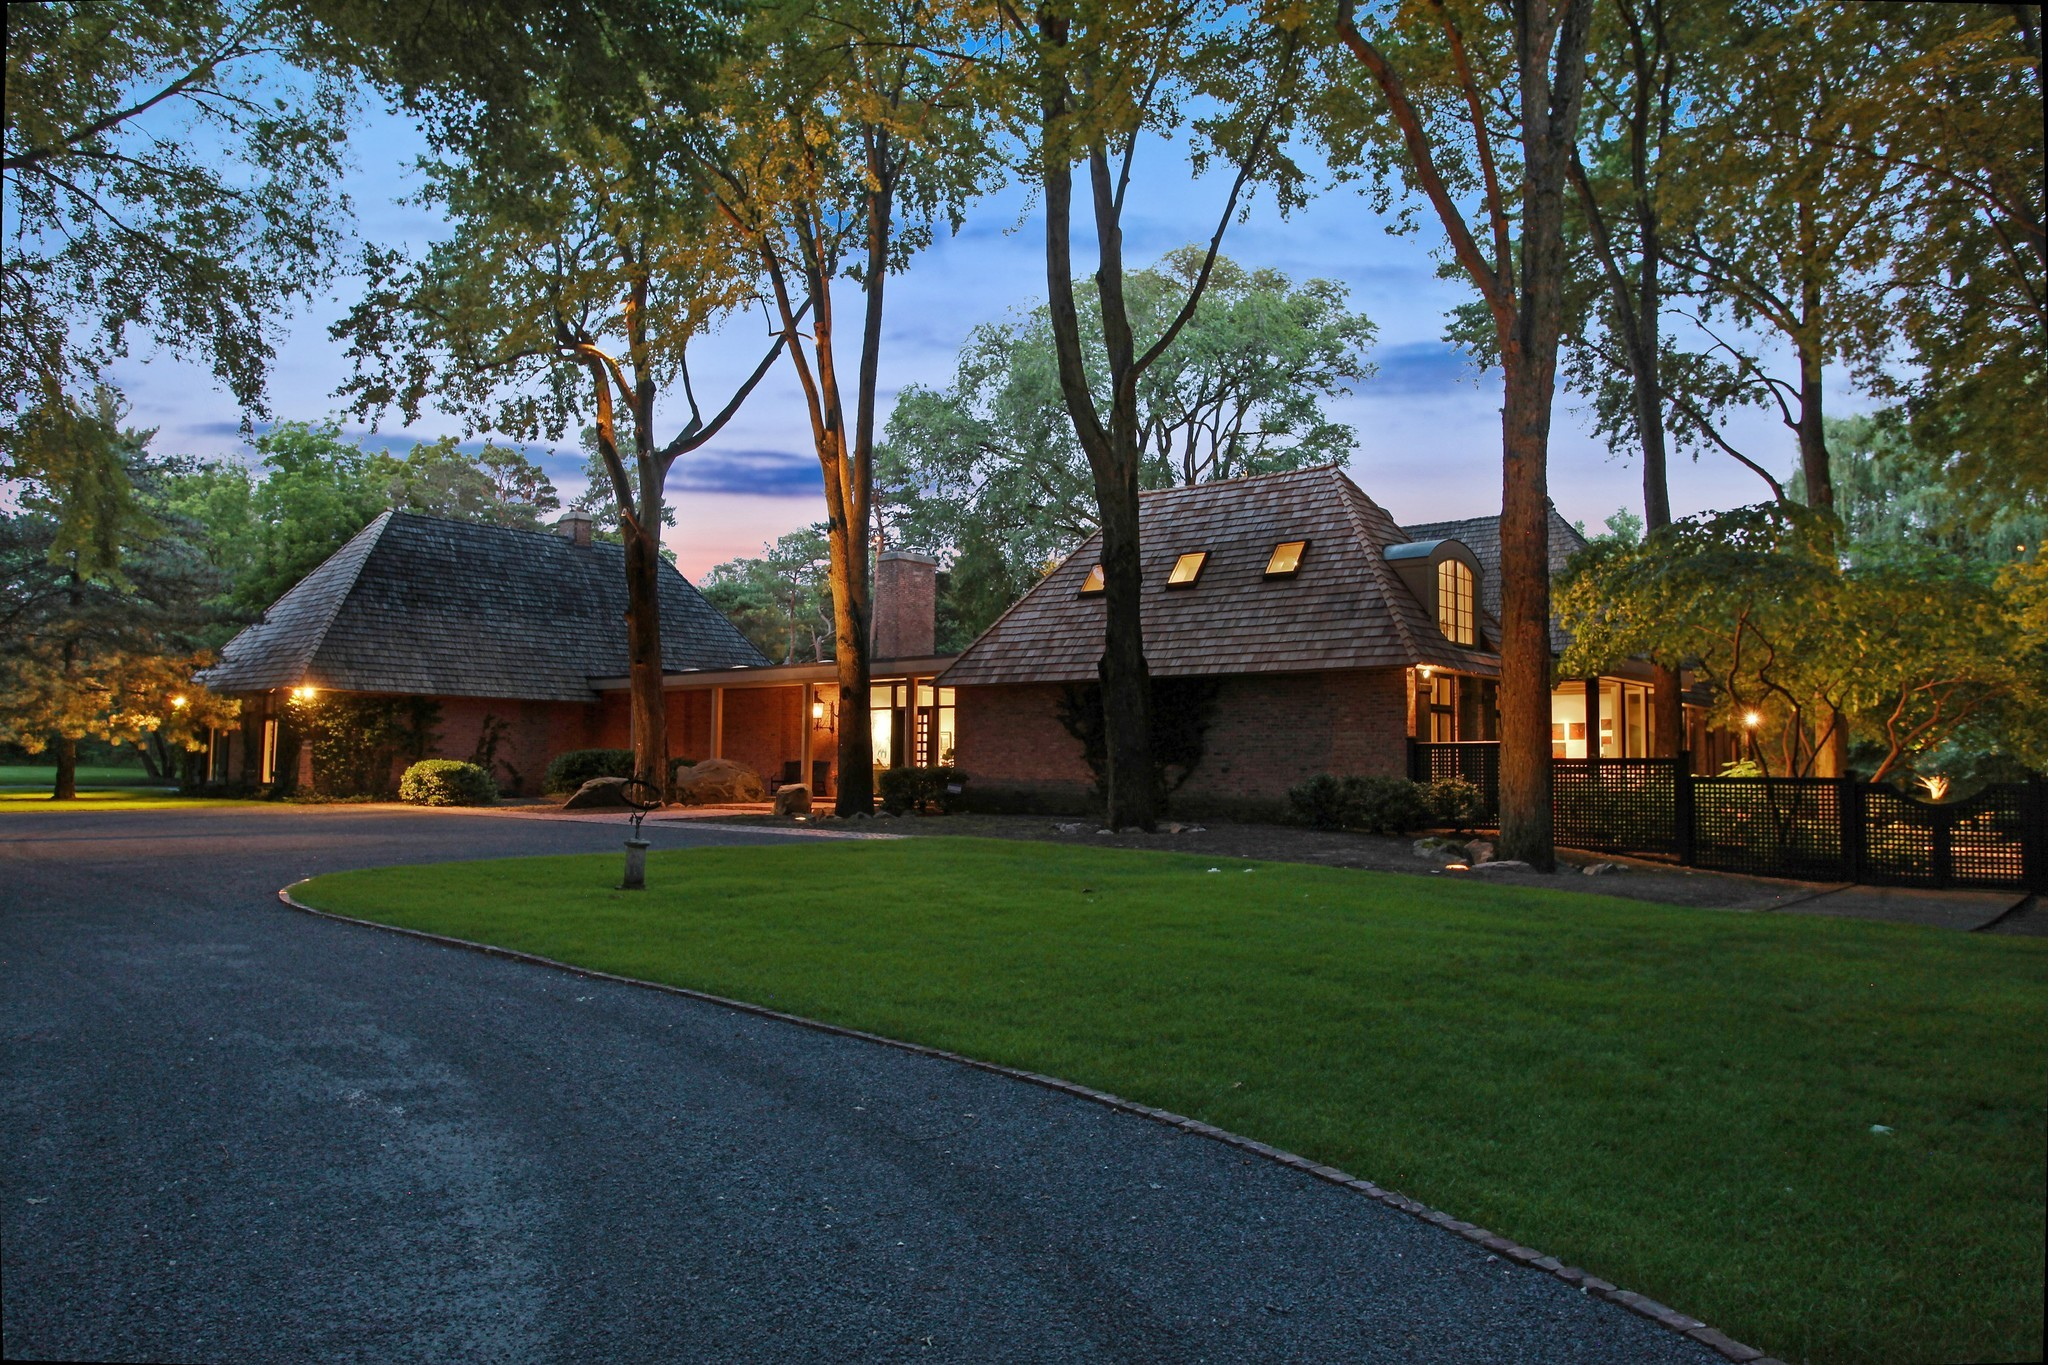 Resort-like home in Lake Forest: $5M